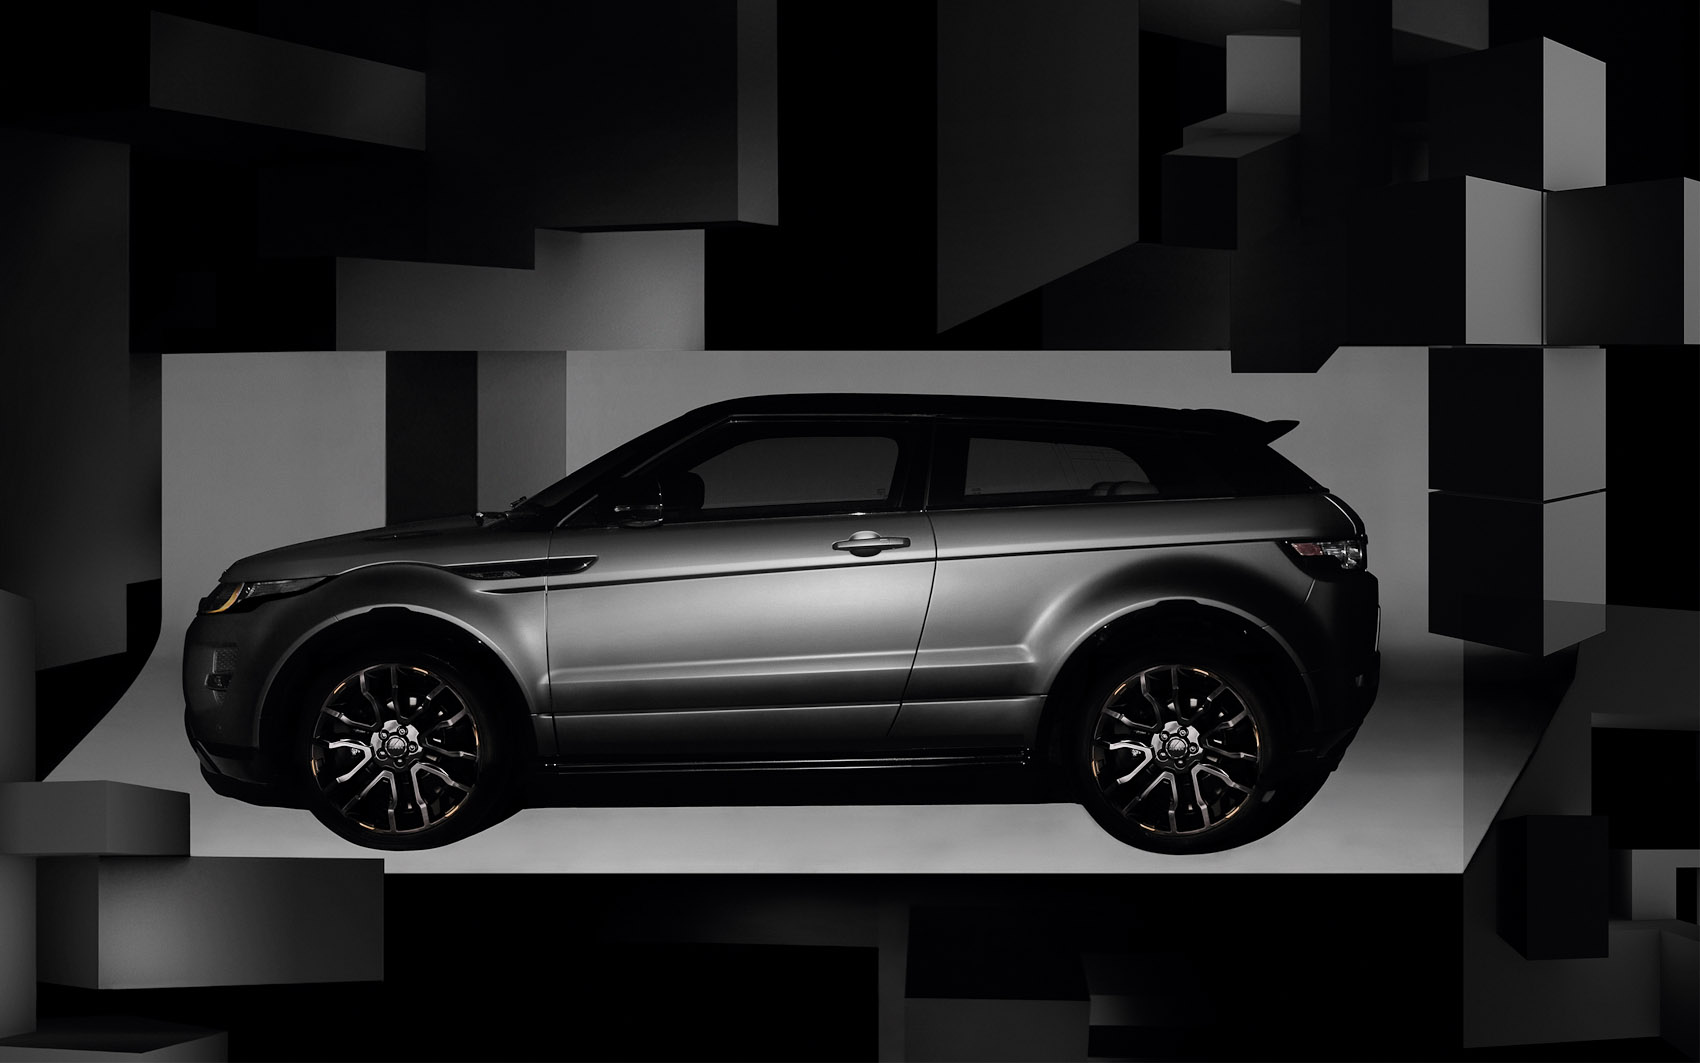 03_nick_knight_shoot_range_rover_evoque_se_with_victoria_beckham_05_rgb-2